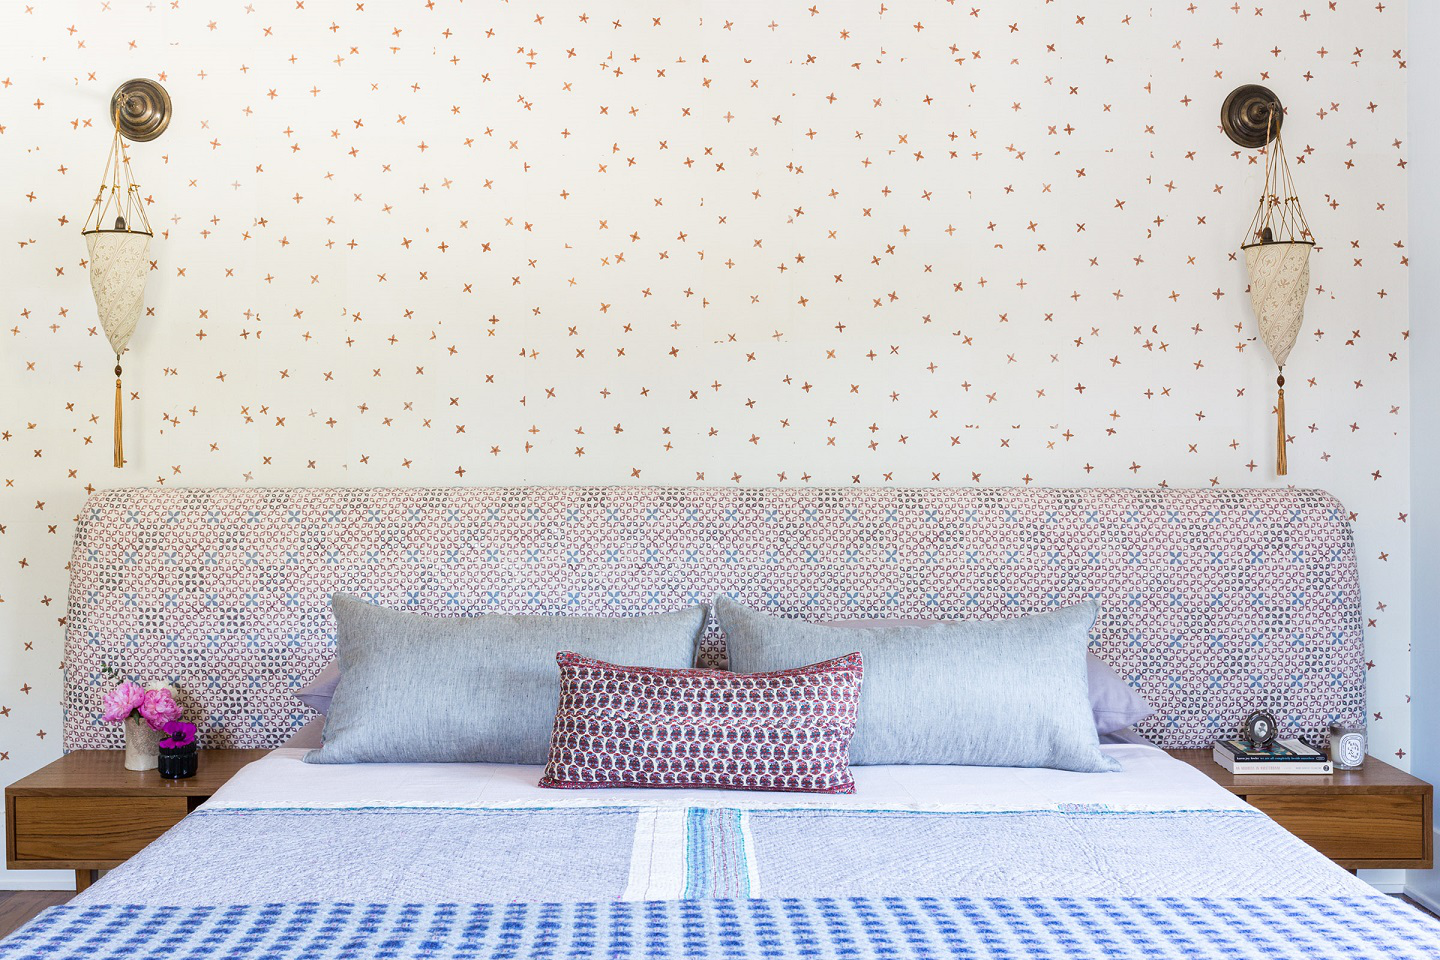 Colorful Bedroom with wallpaper by D2 Interiors